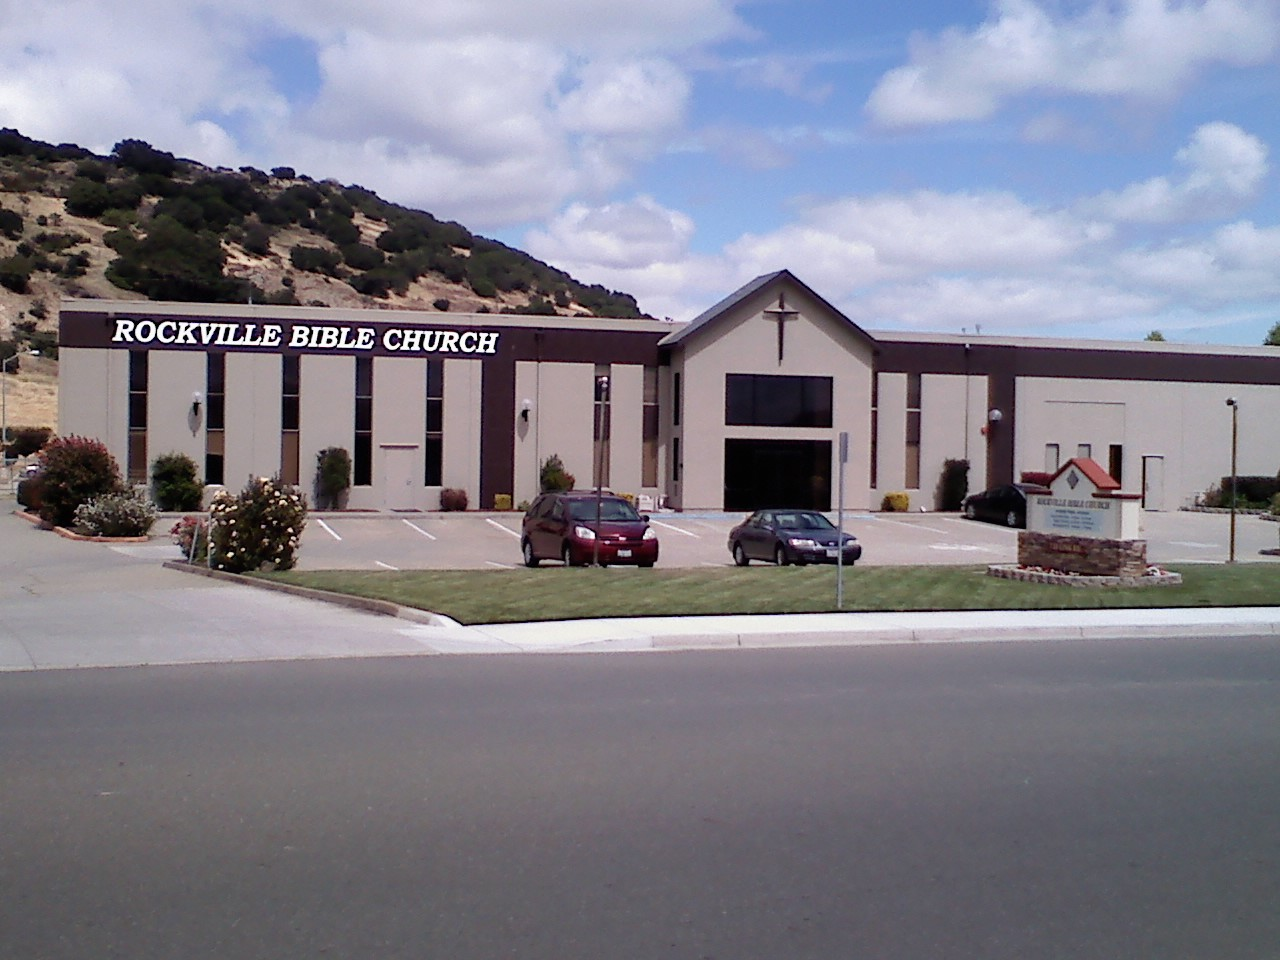 Rockville Bible Church